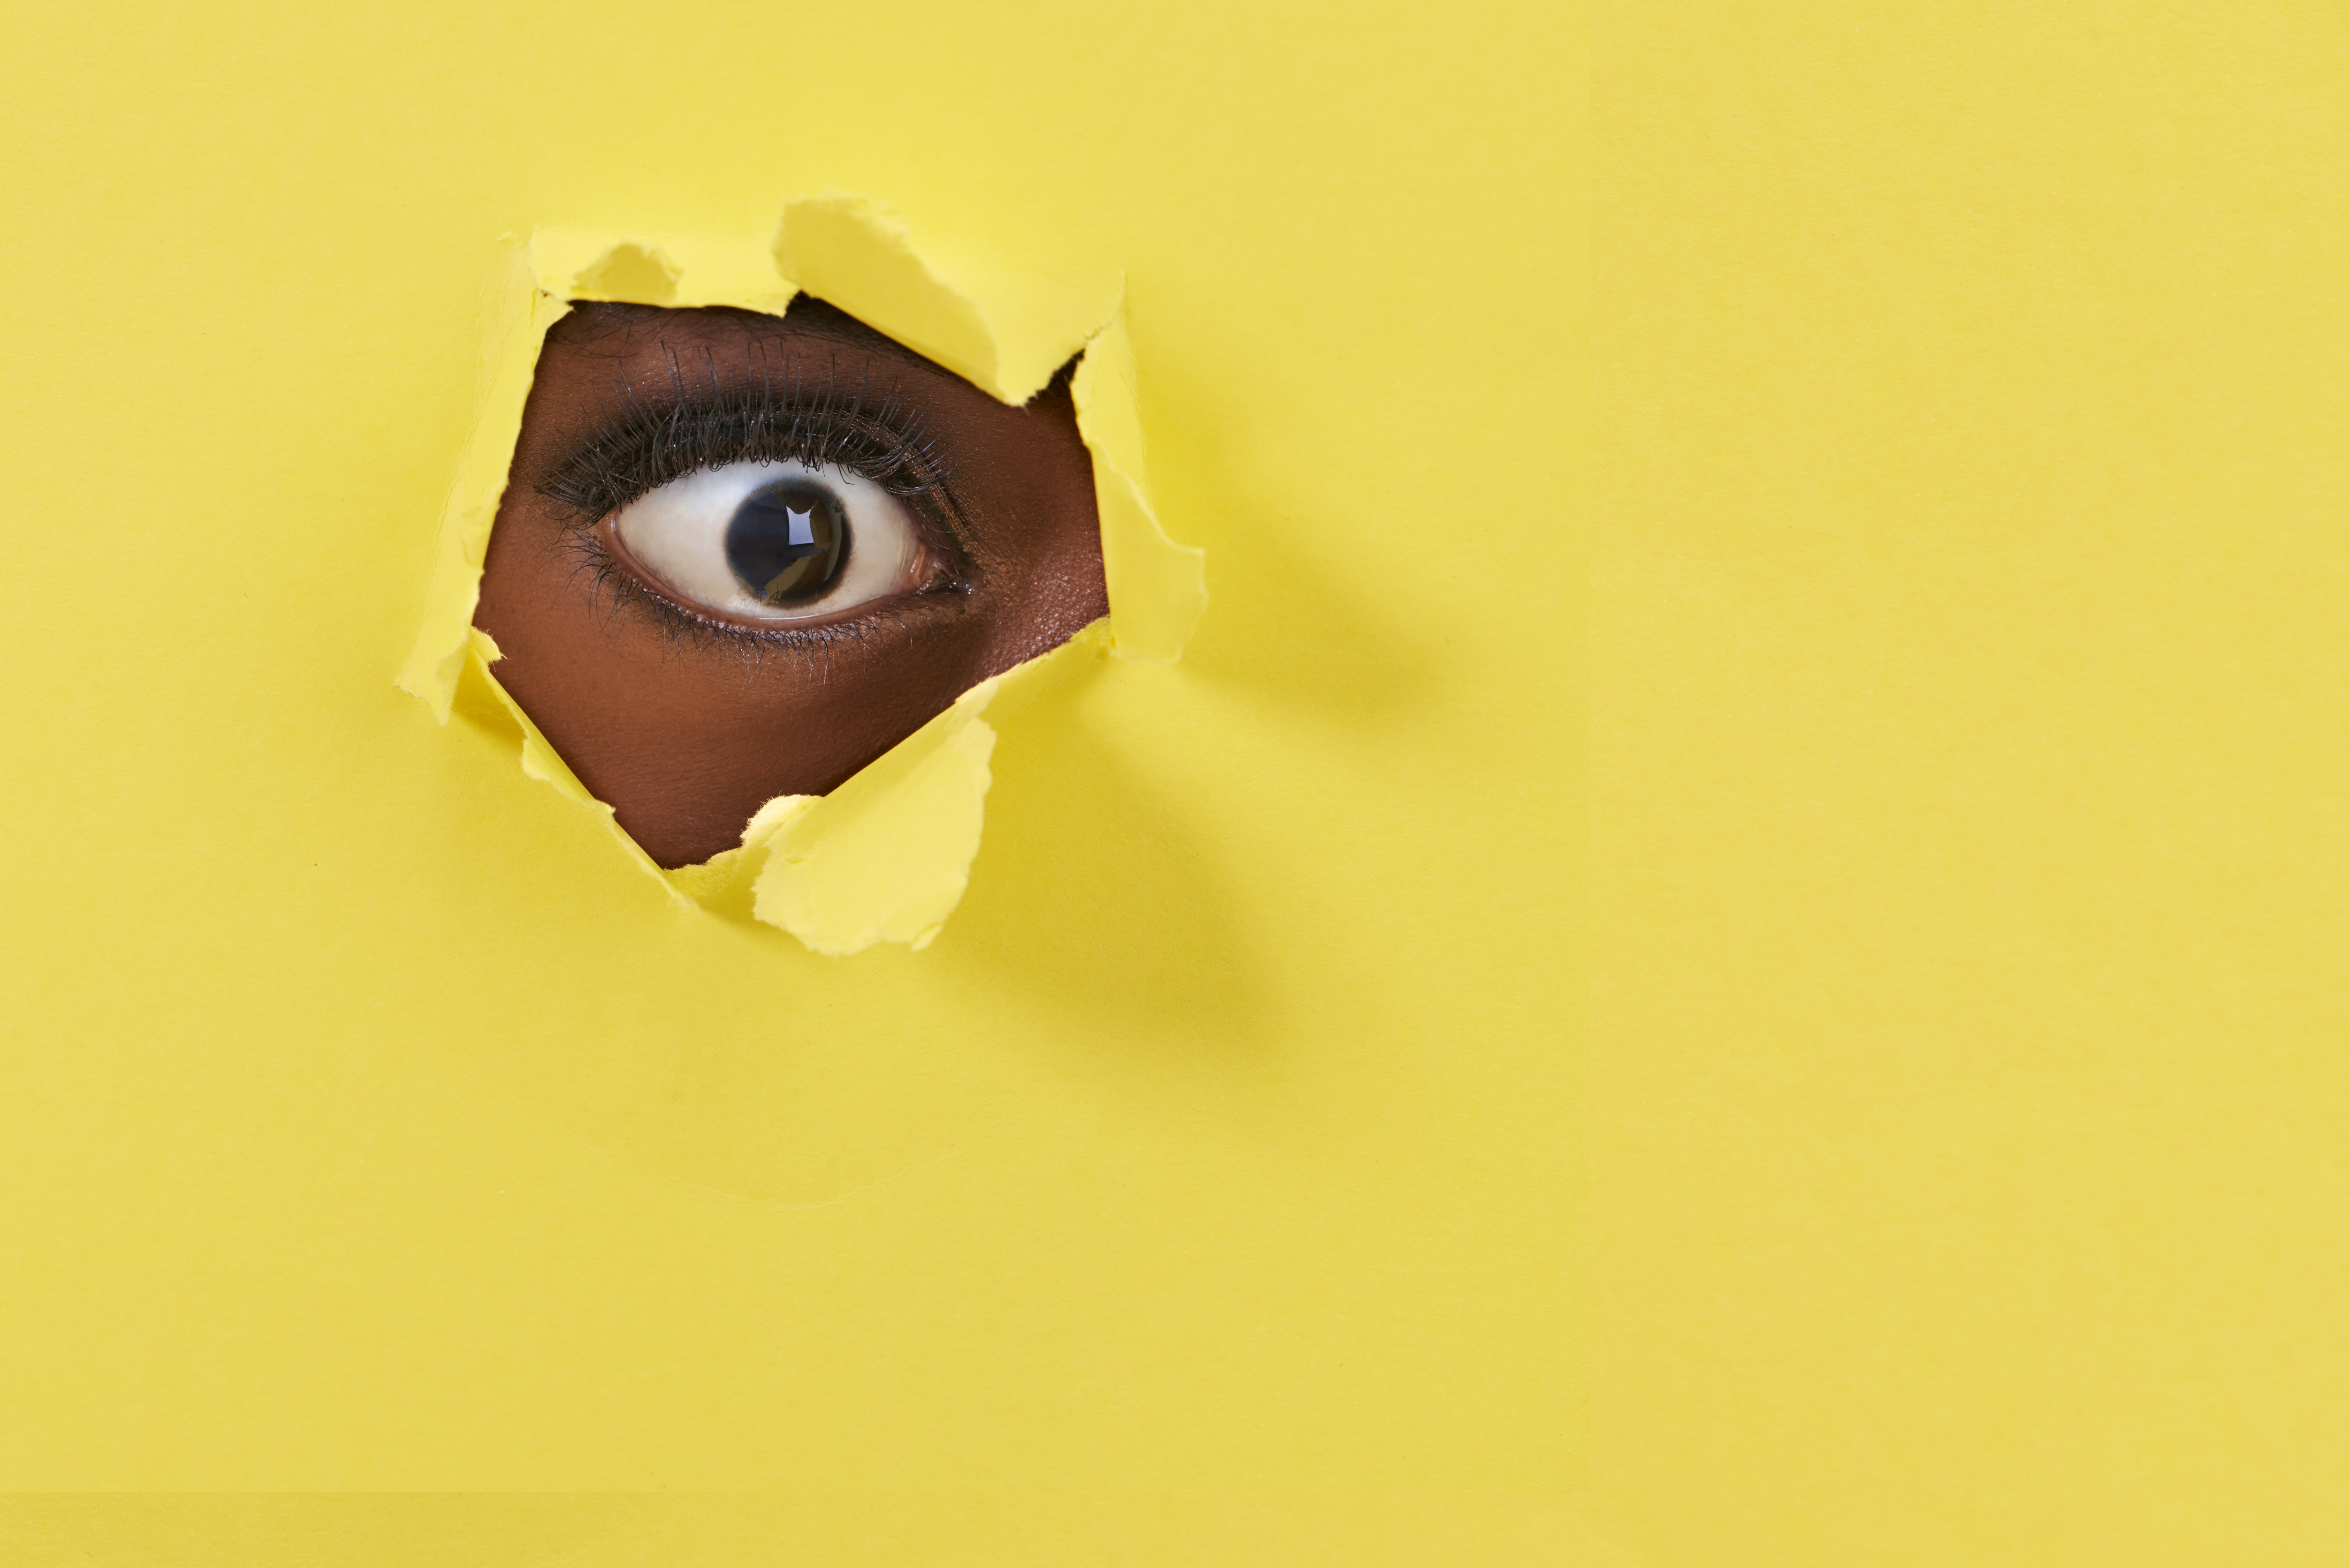 A view of a woman's eye looking through a hole in yellow paper